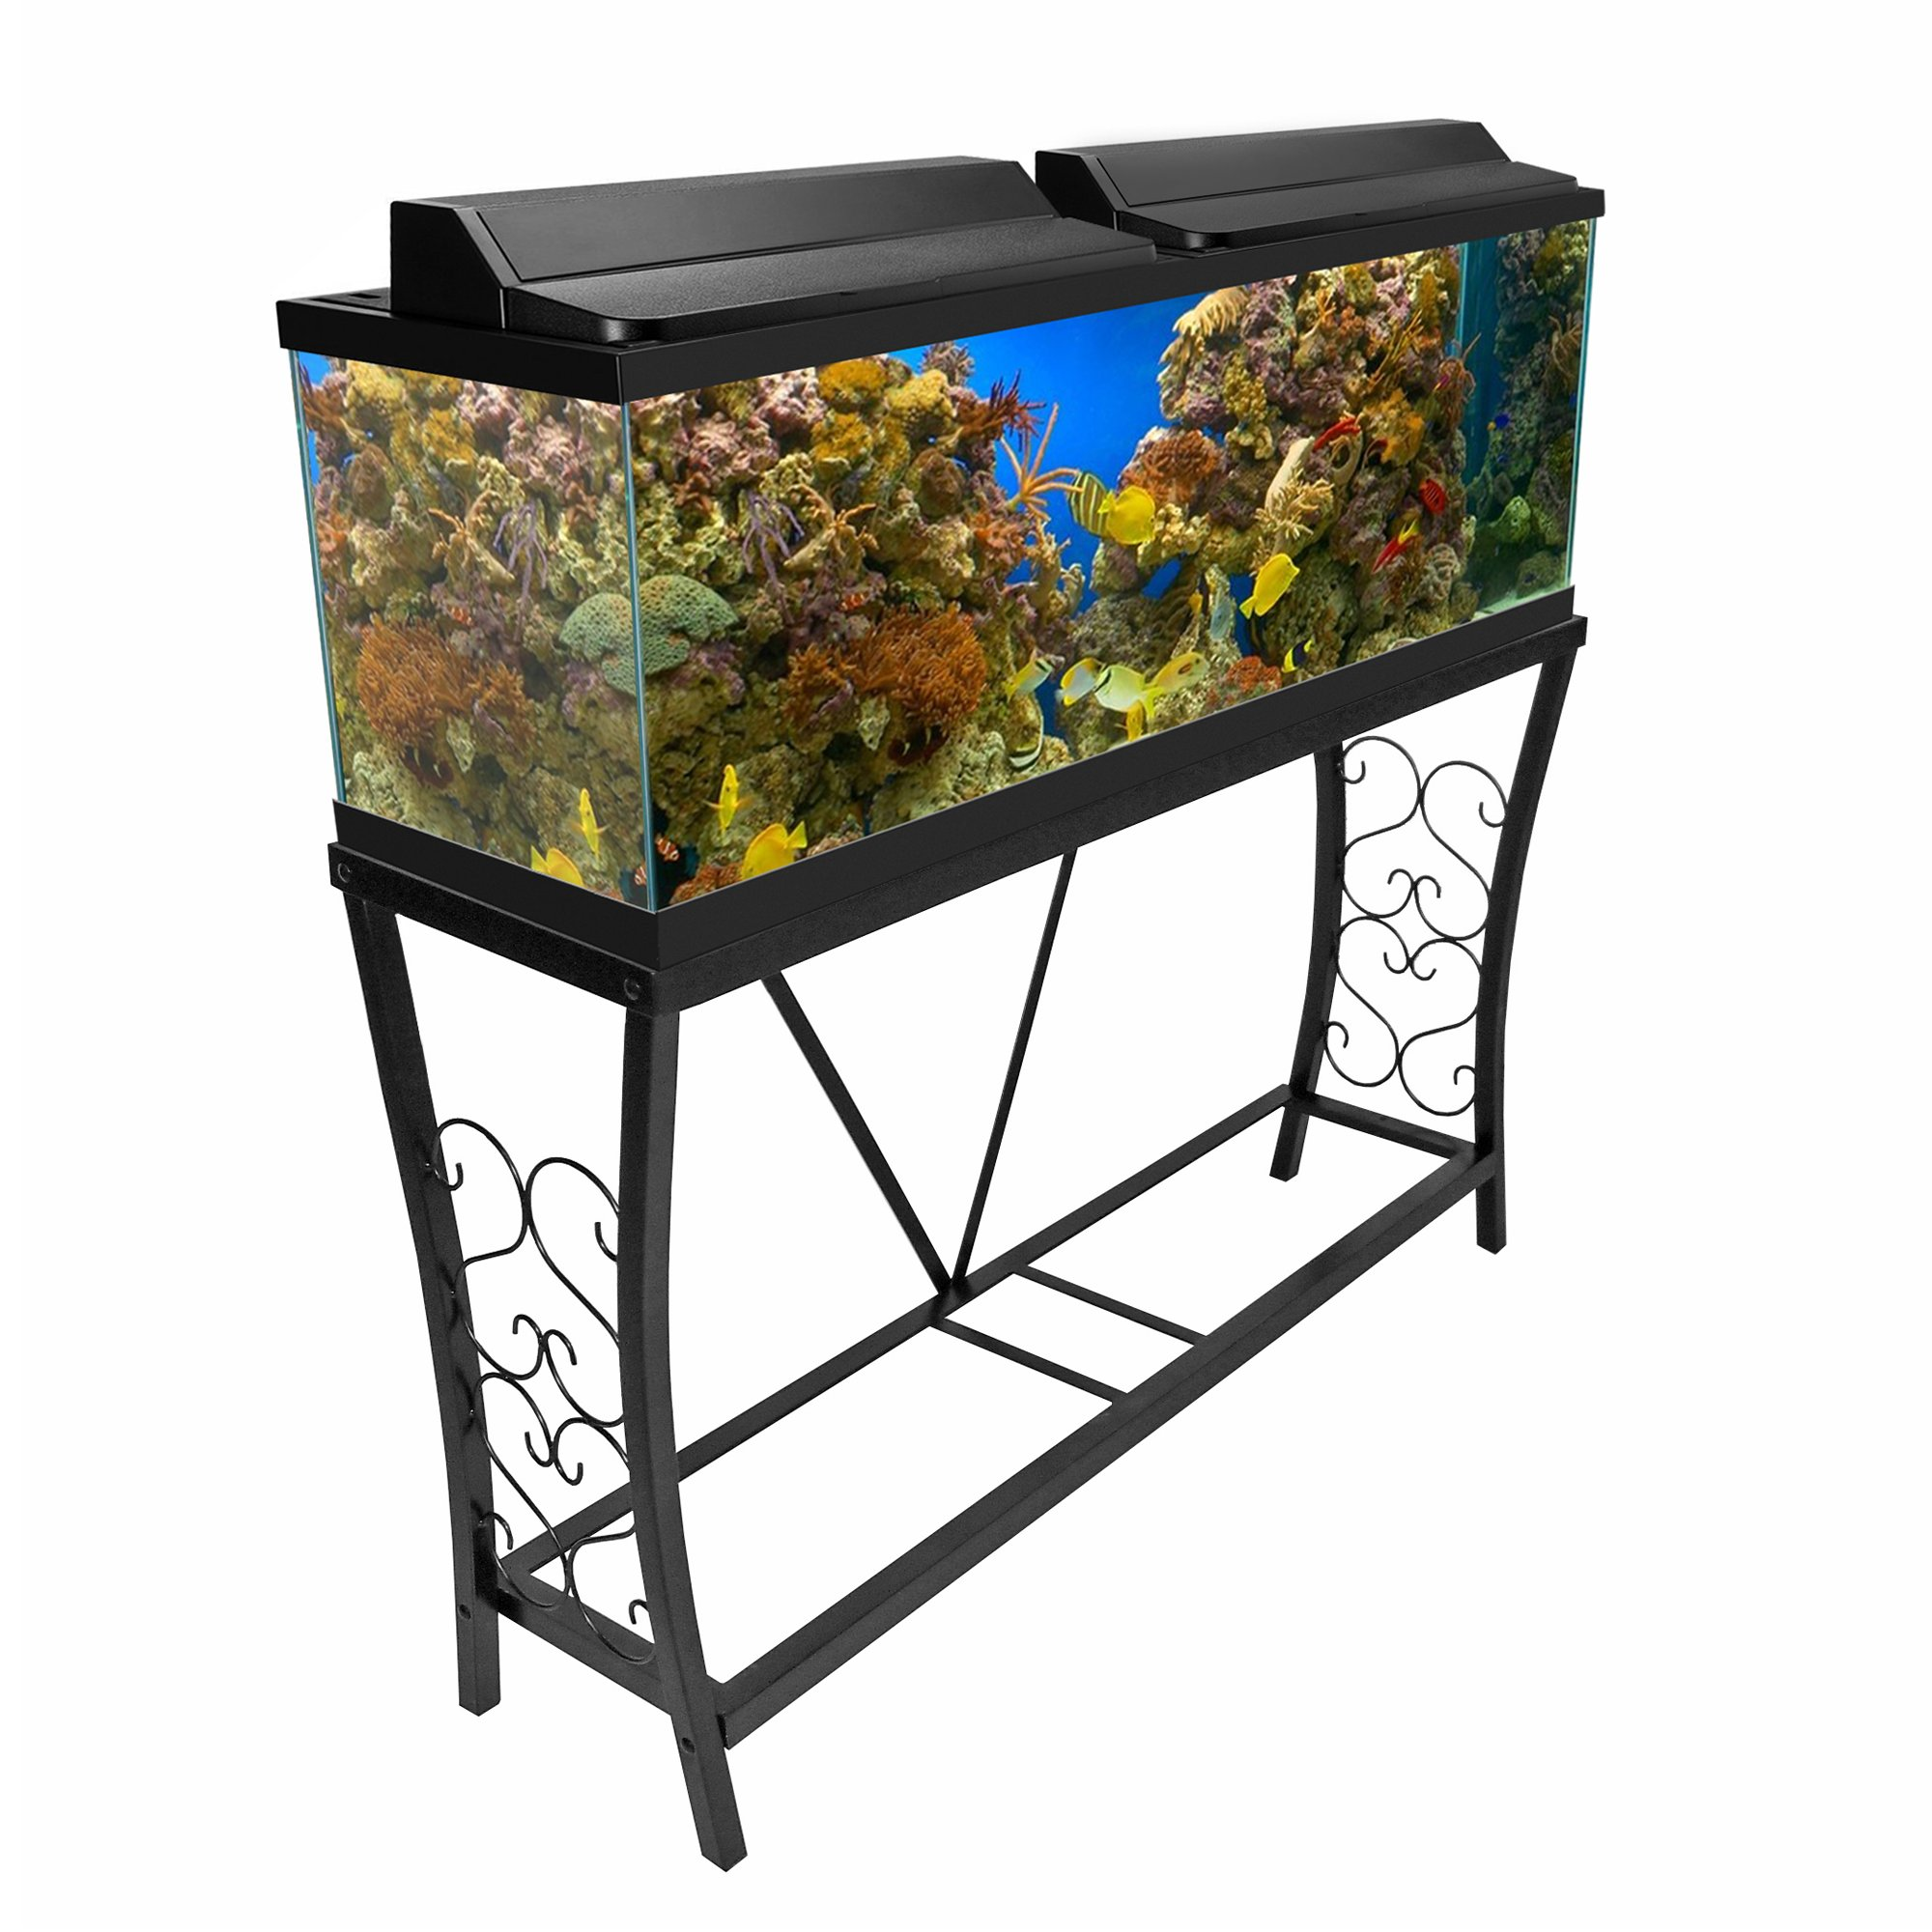 Aquatic fundamentals black scroll aquarium stand 55 for Fish tank table stand